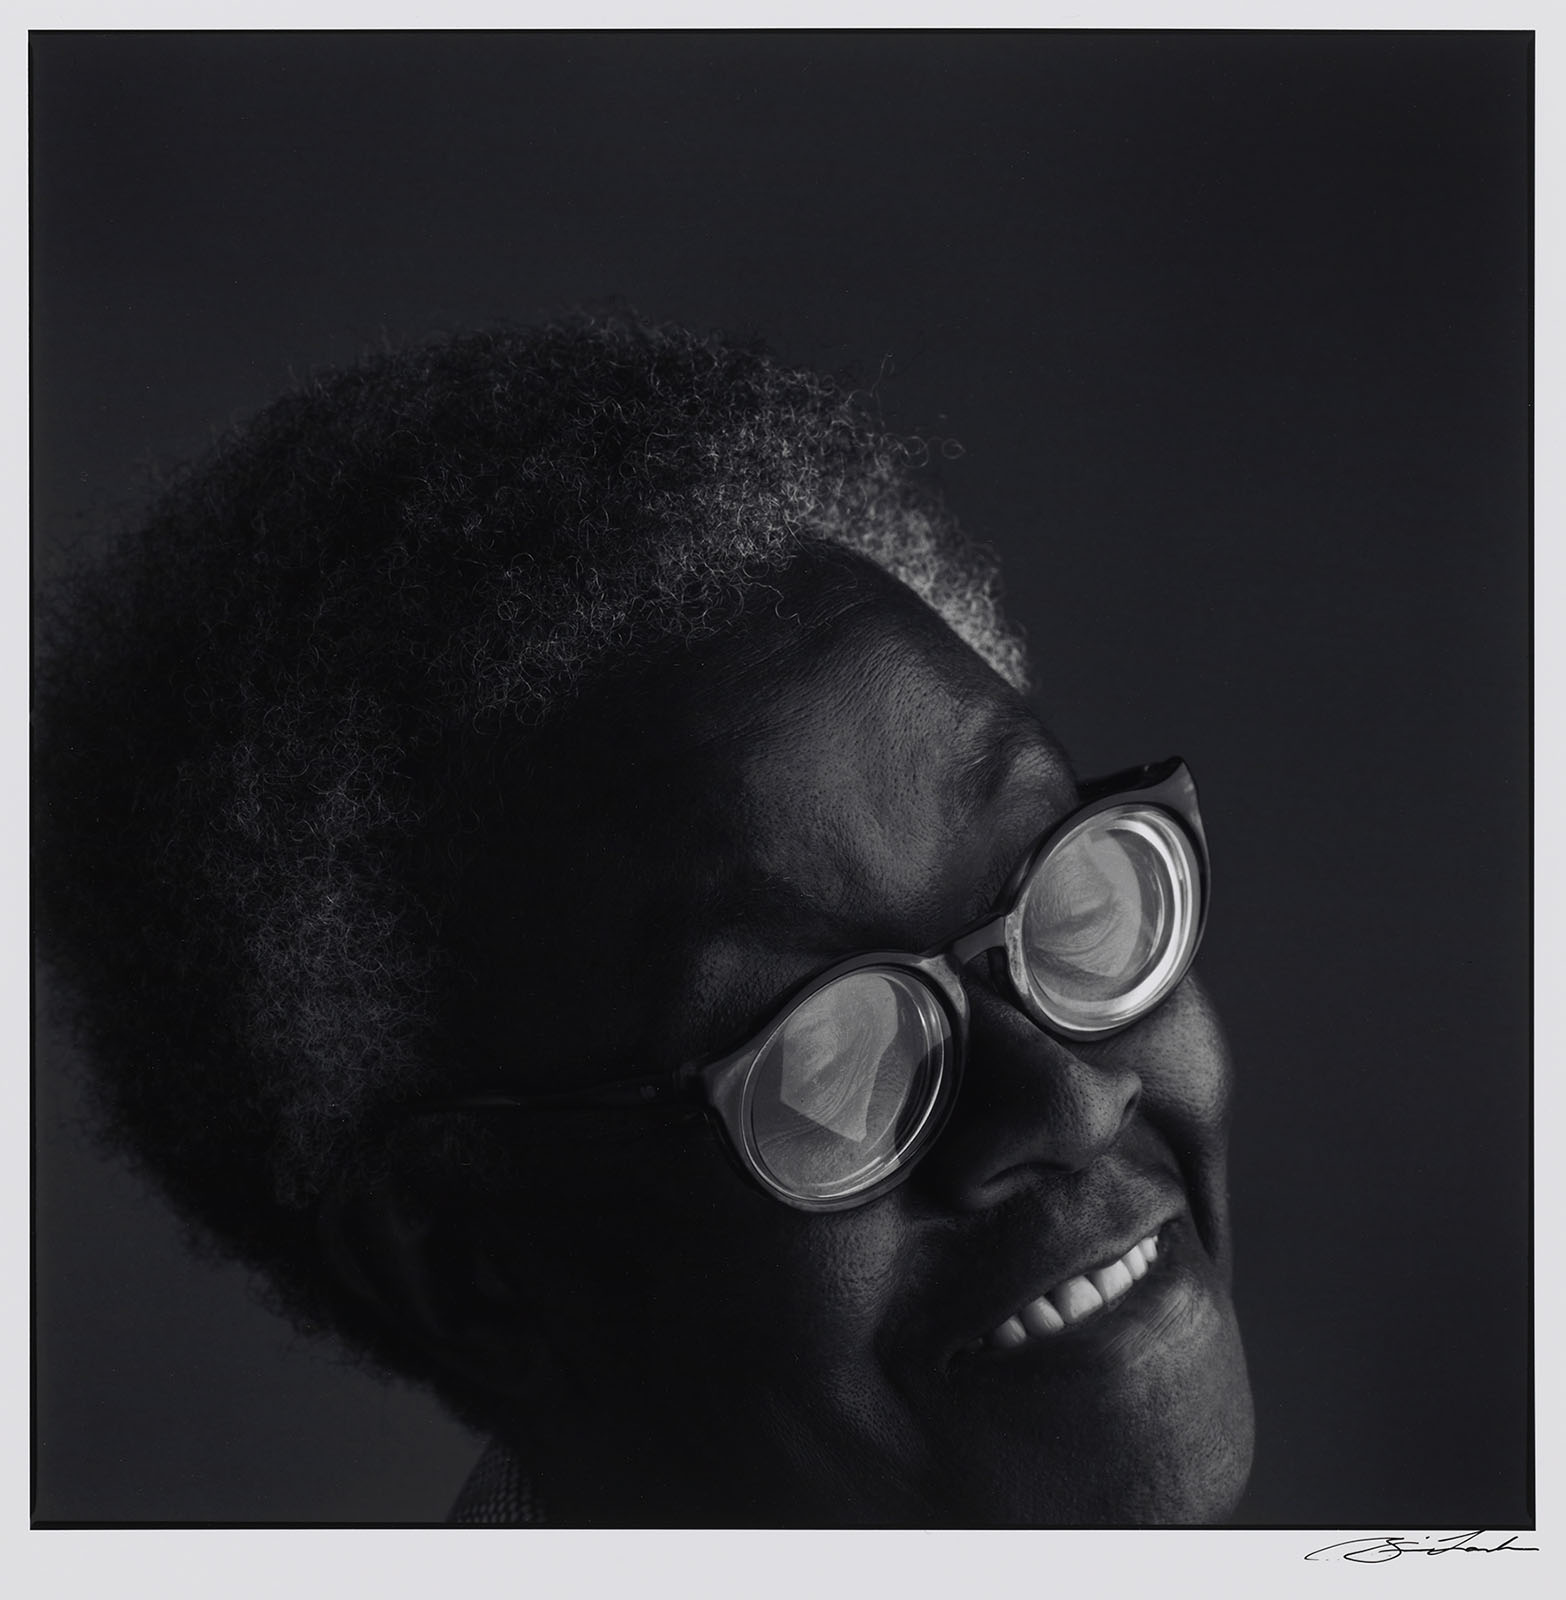 Brian Lanker, Gwendolyn Brooks, 1987–88, from the series I Dream a World. Harvard Art Museums/Fogg Museum, Schneider Erdman Printer's Proof Collection, partial gift, and partial purchase through the Margaret Fisher Fund, 2011.287.